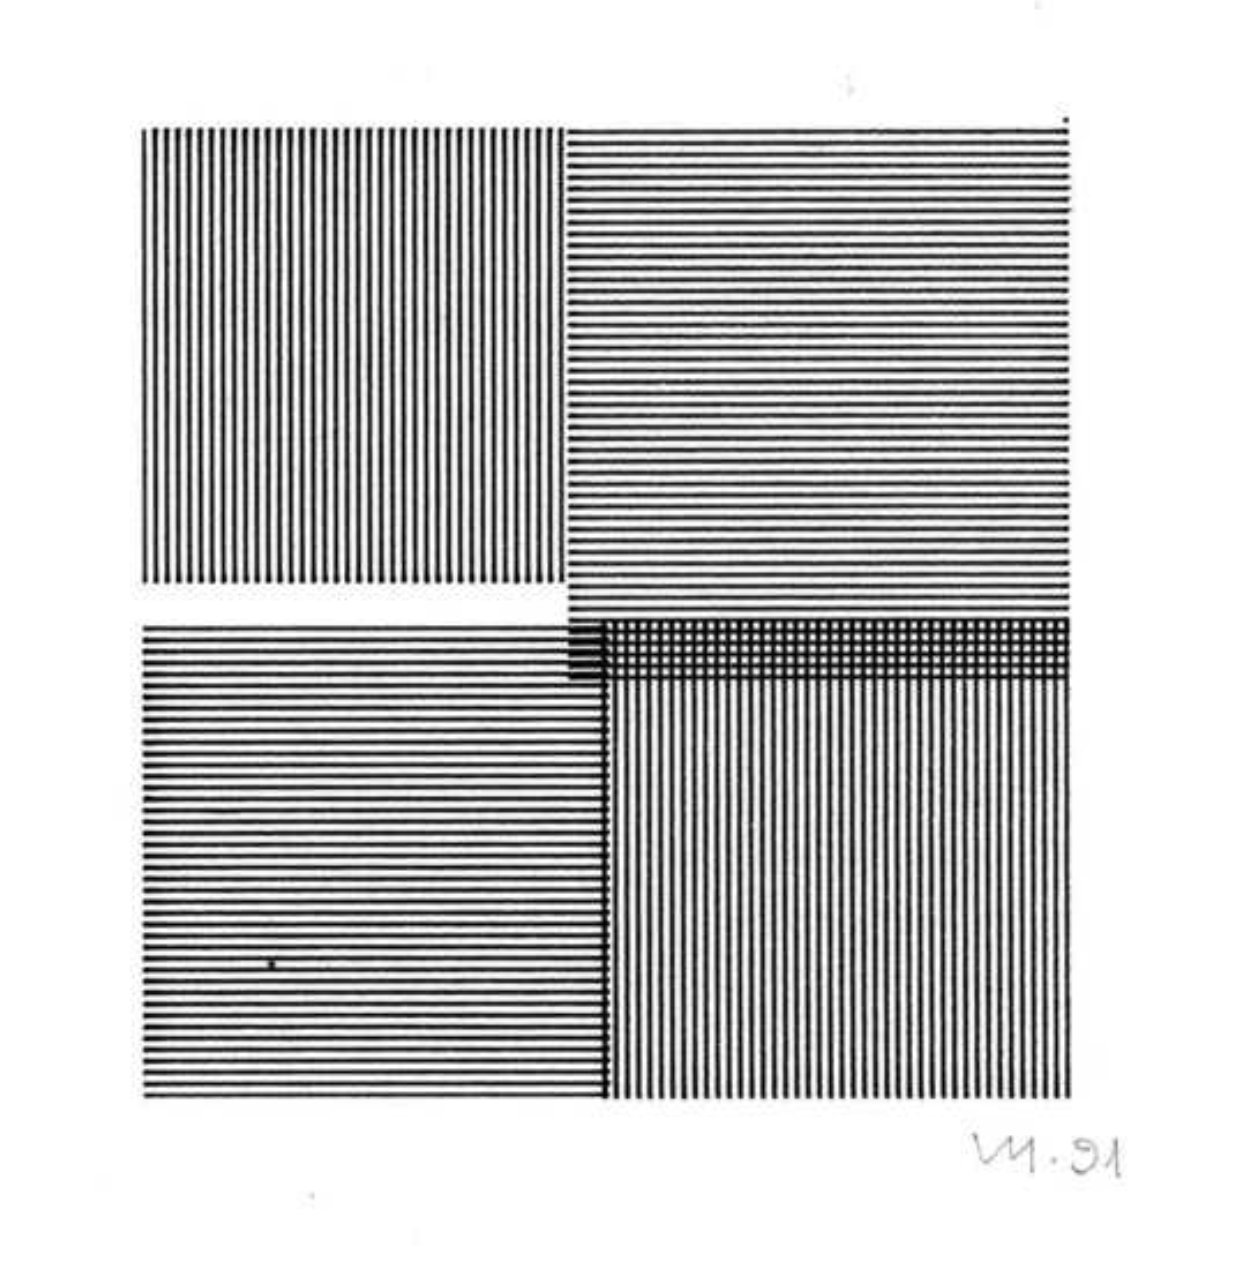 Vera Molnar, Quatre carrès, open series, plotter drawing, 1991, +/- 7,8 x 7,4 cm